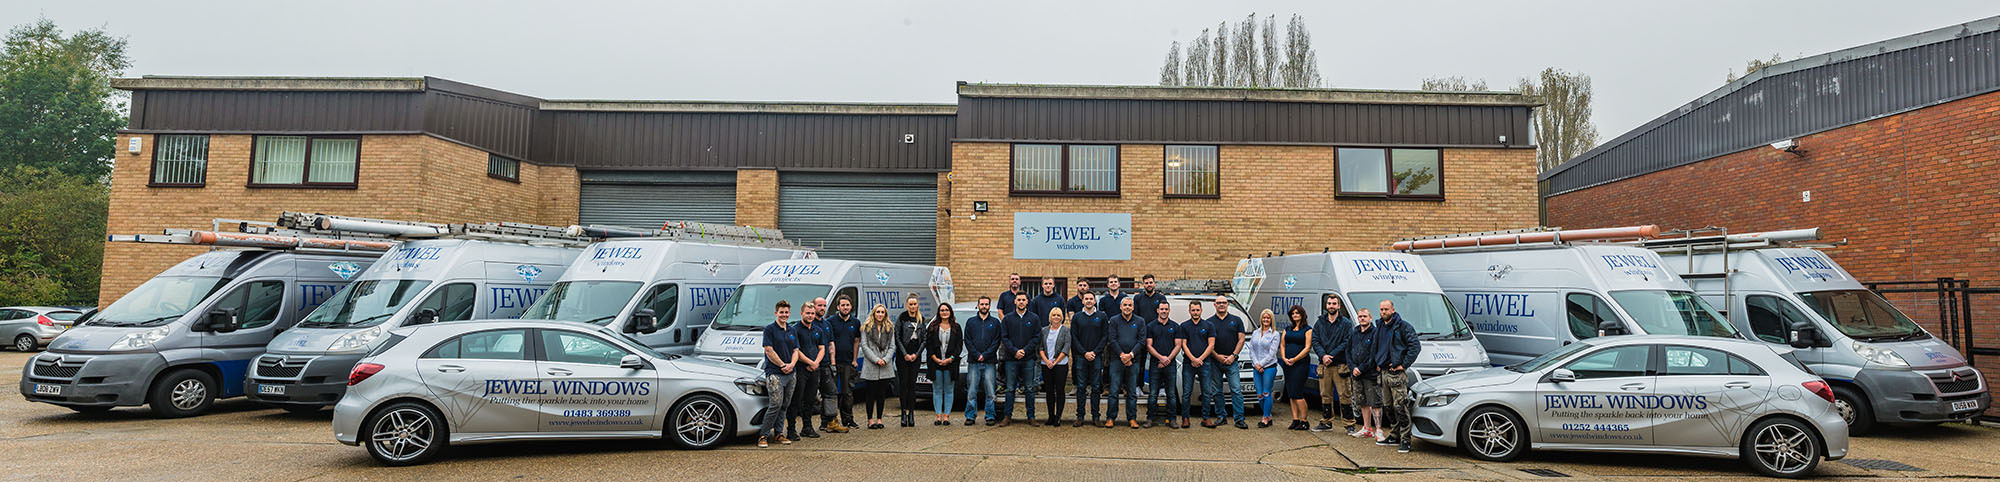 Jewel Windows Team Surrey